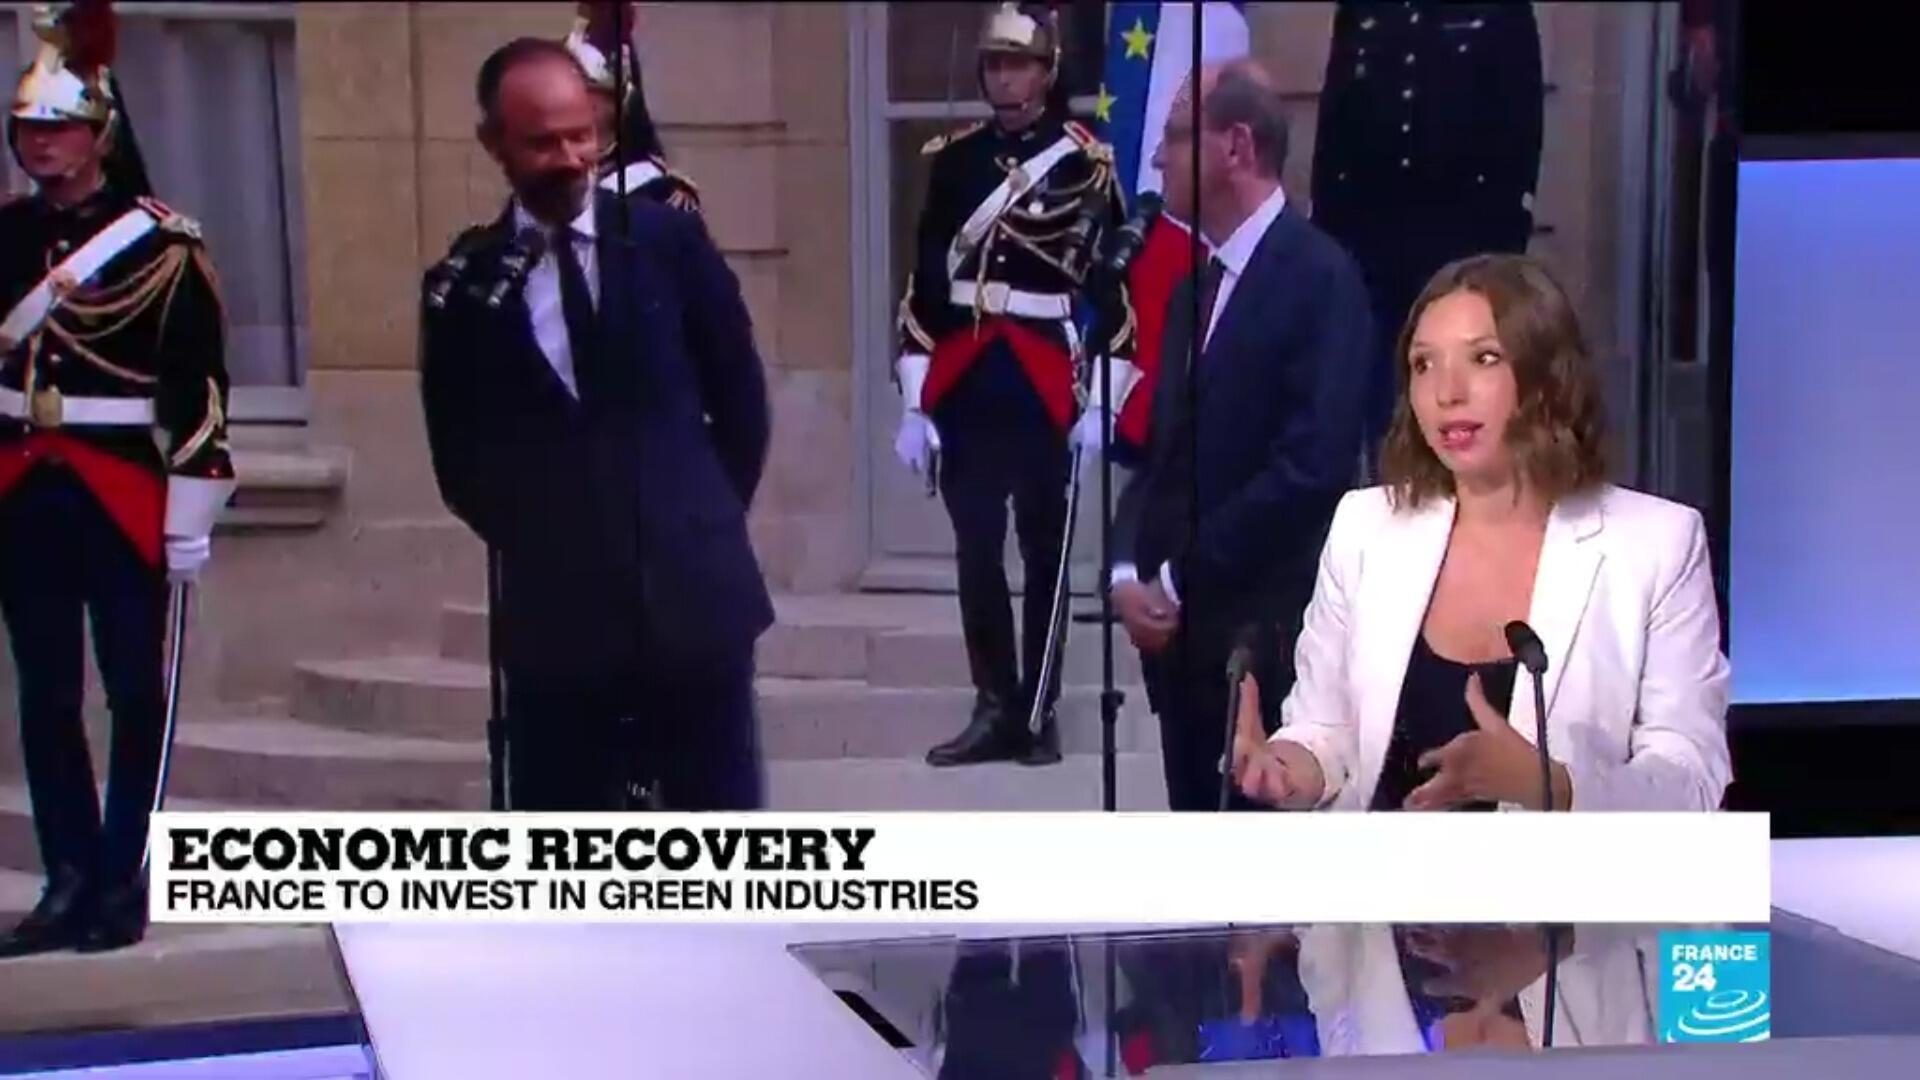 France's economic recovery